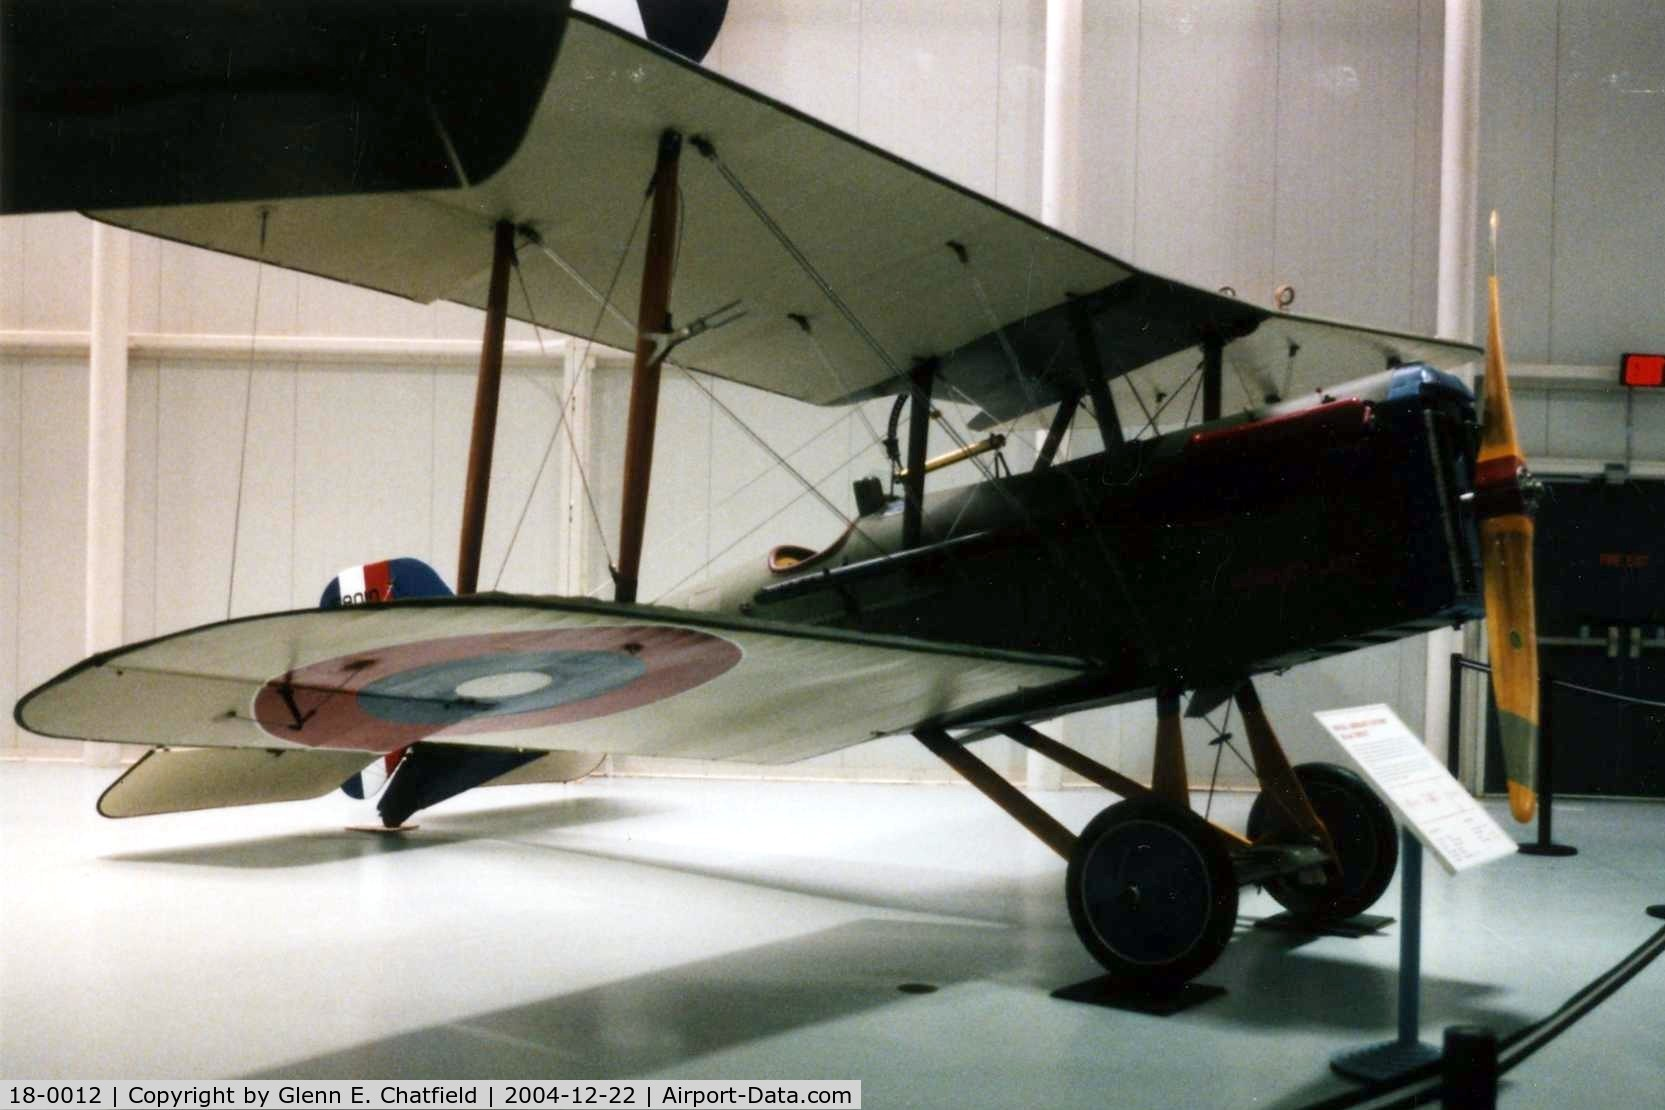 18-0012, 1918 Curtiss SE.5A C/N F8010, S.E. 5A at the Army Aviation Museum